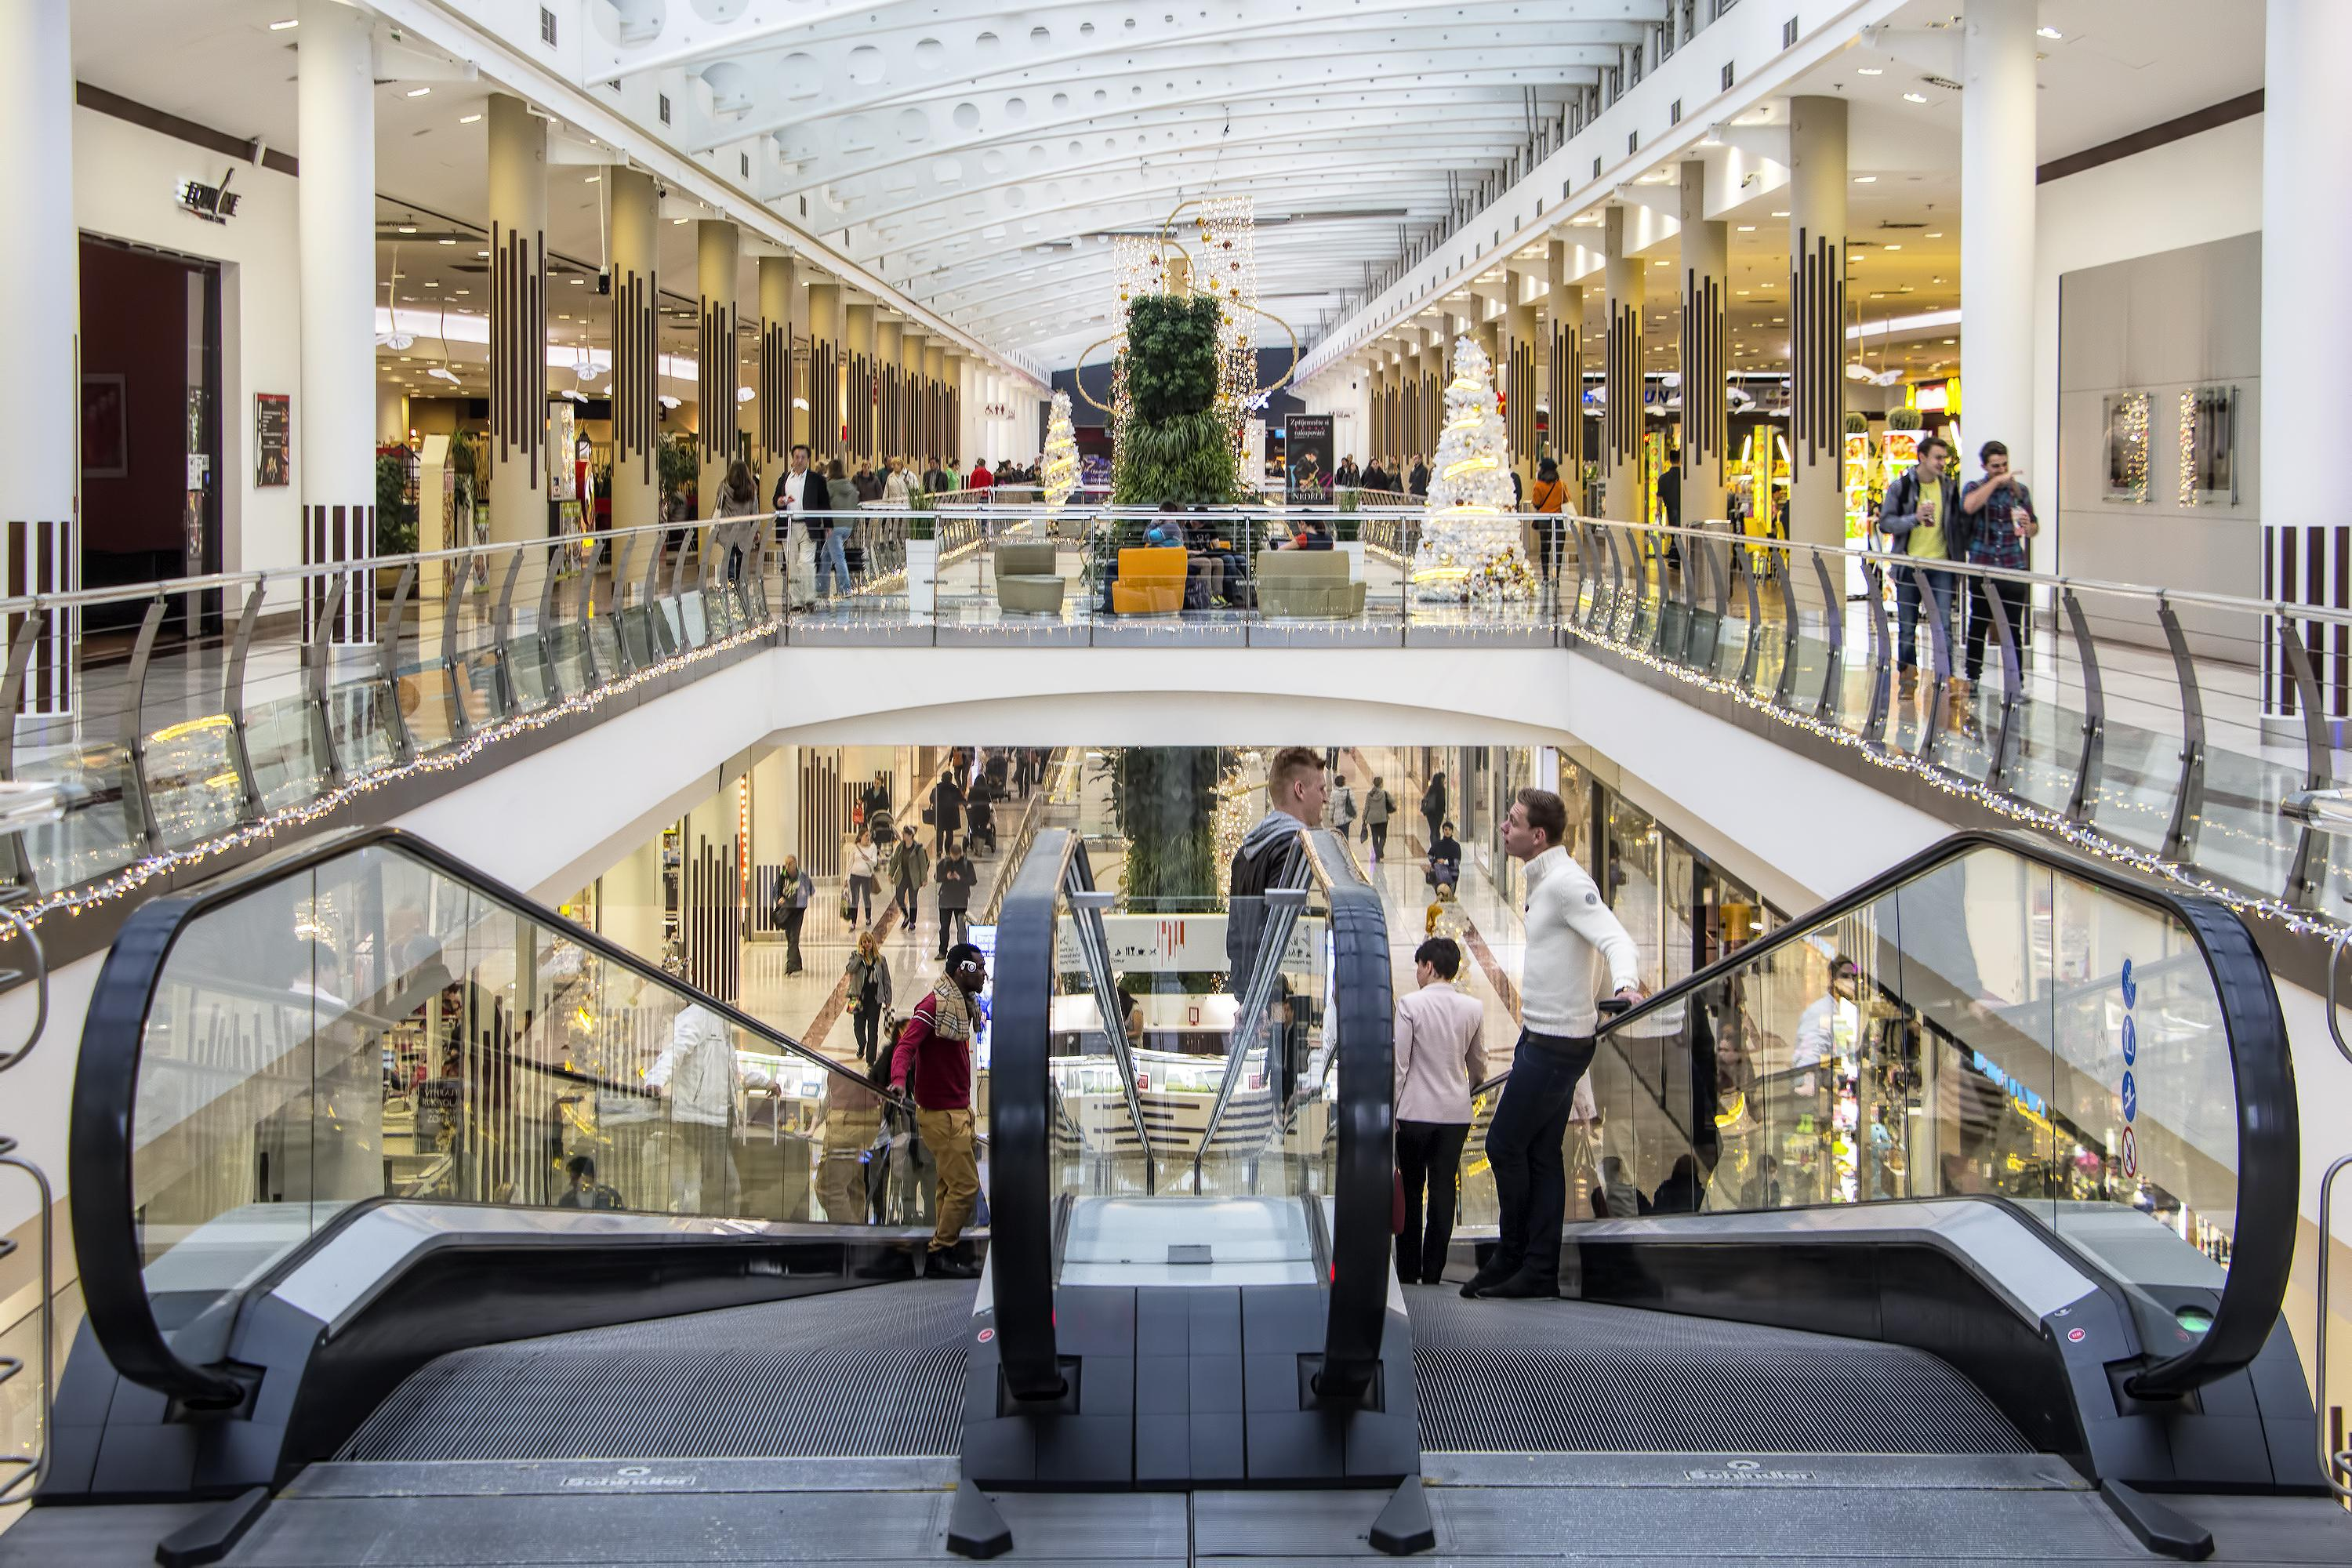 See That Obviously Adoptive Family at the Mall You Want to Compliment? Read This First.